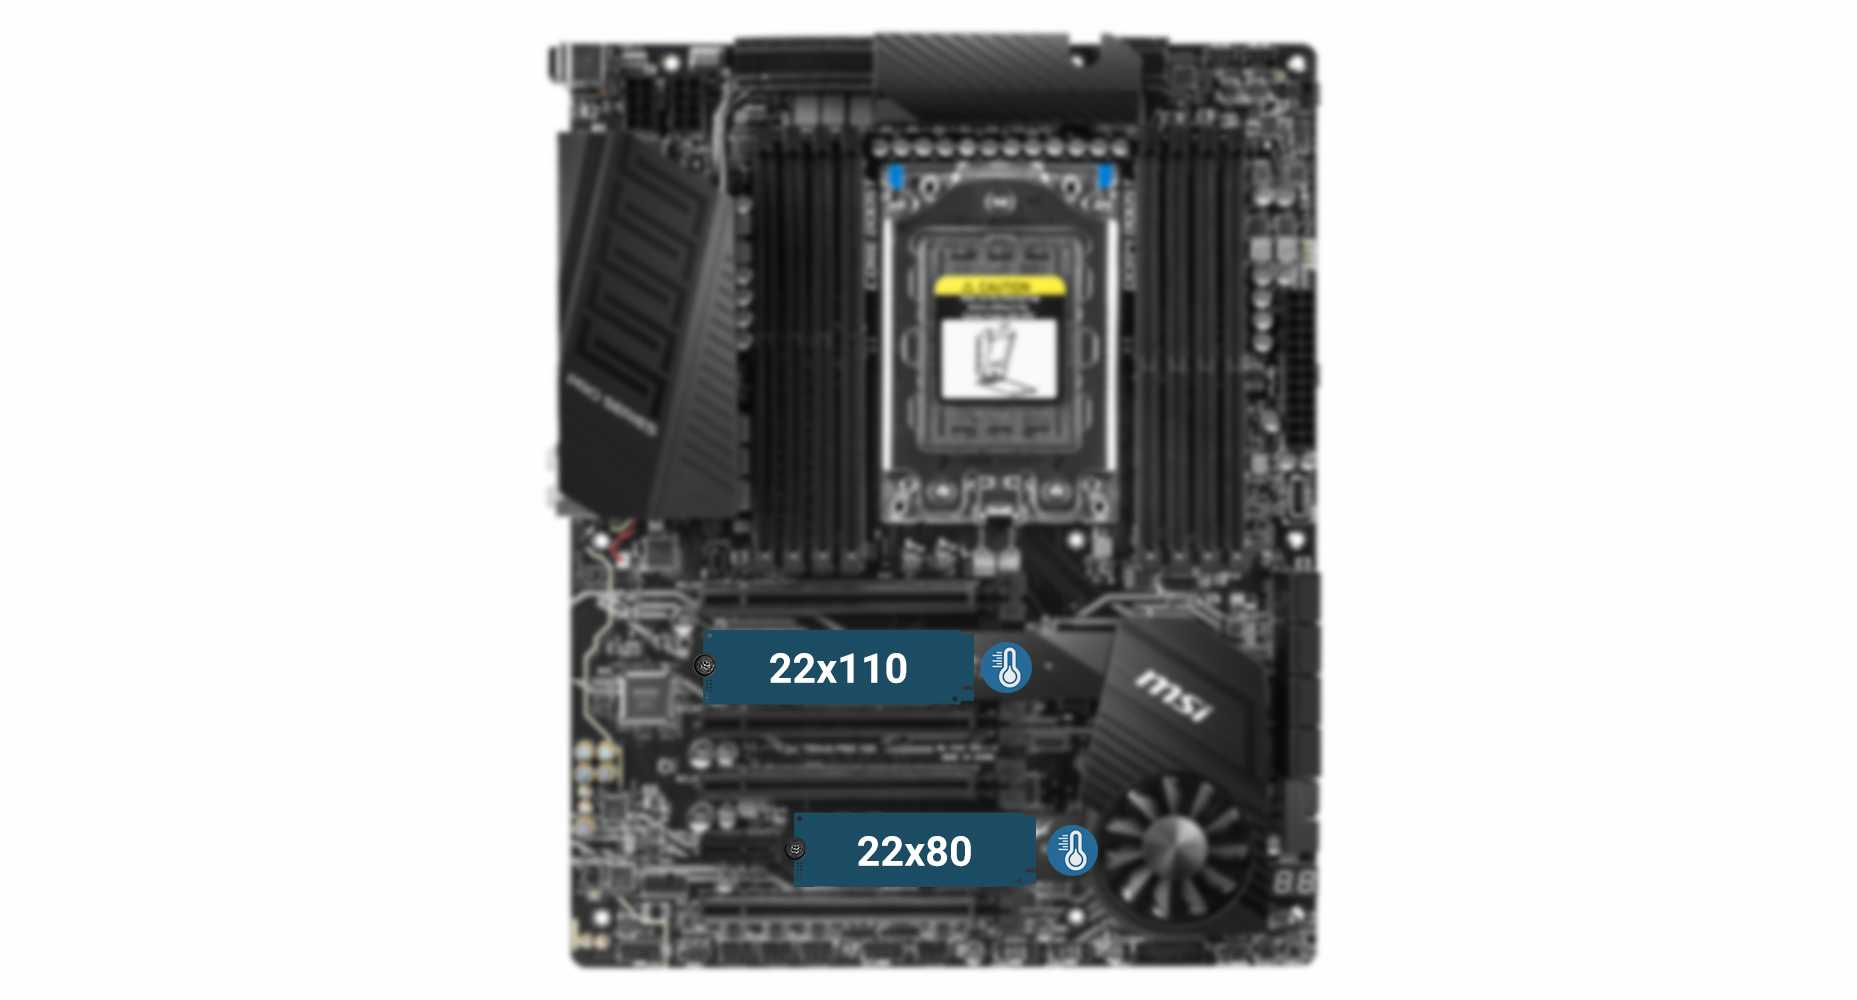 twin_turbo of the motherboard